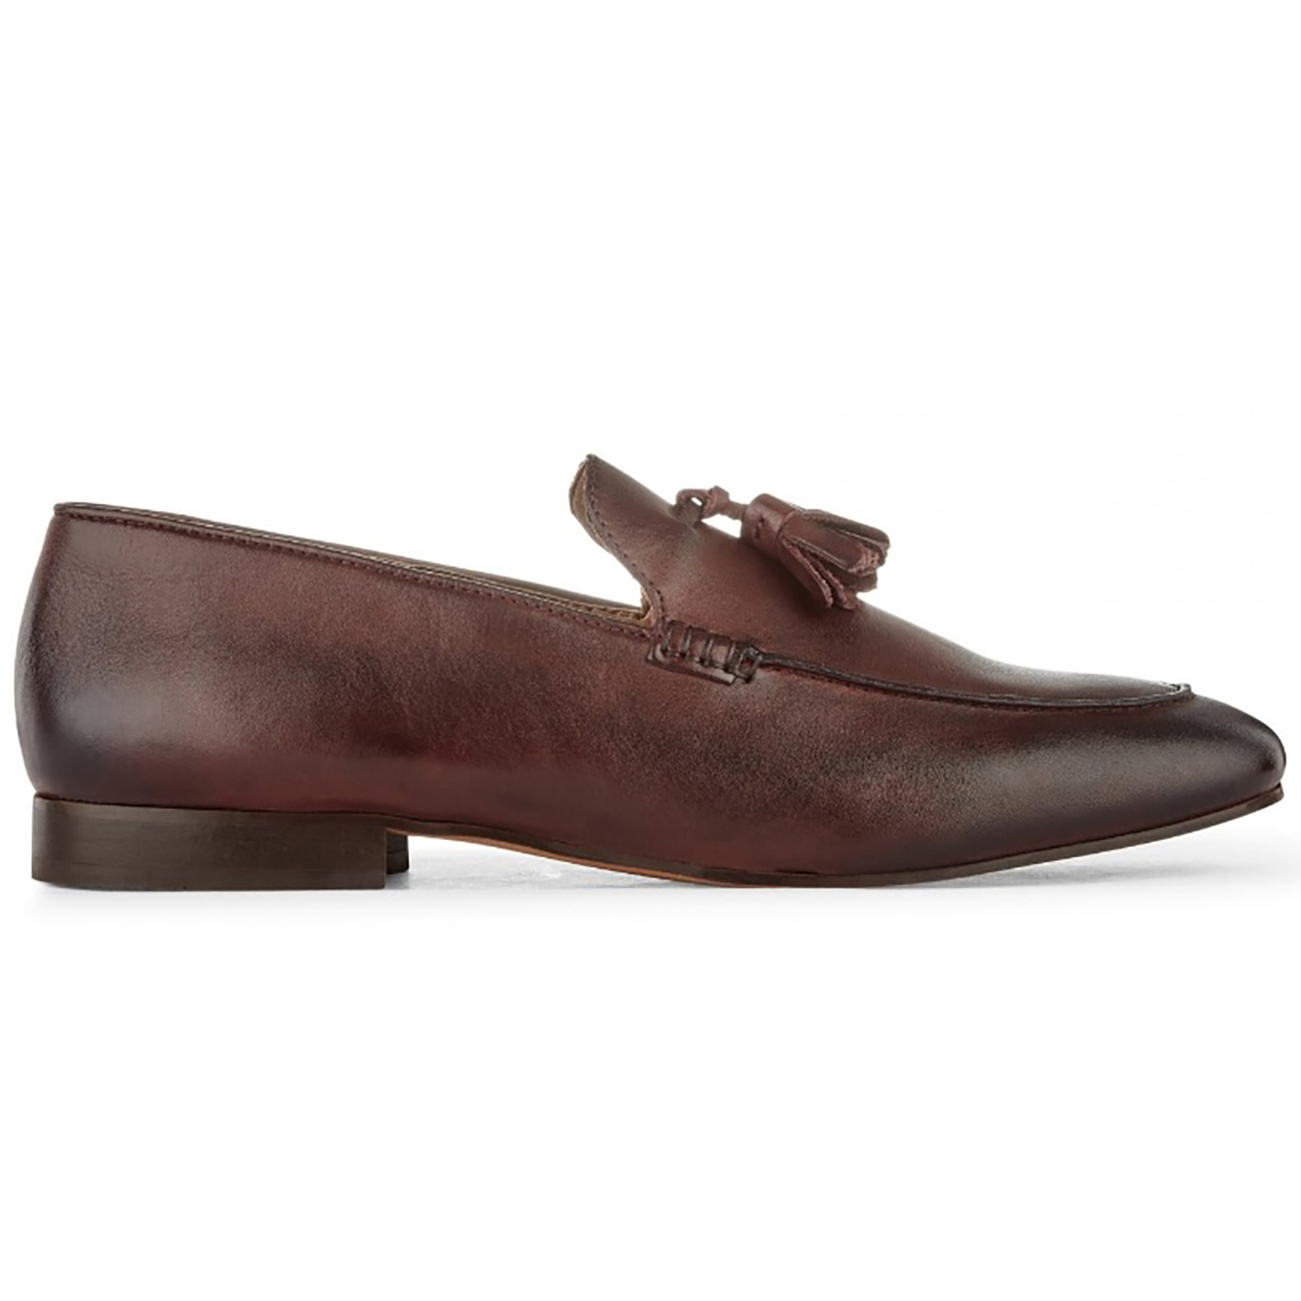 29a4925b40 Details about Mens H By Hudson Bolton Calf Leather Work Office Smart Tassel  Loafers UK 7-12